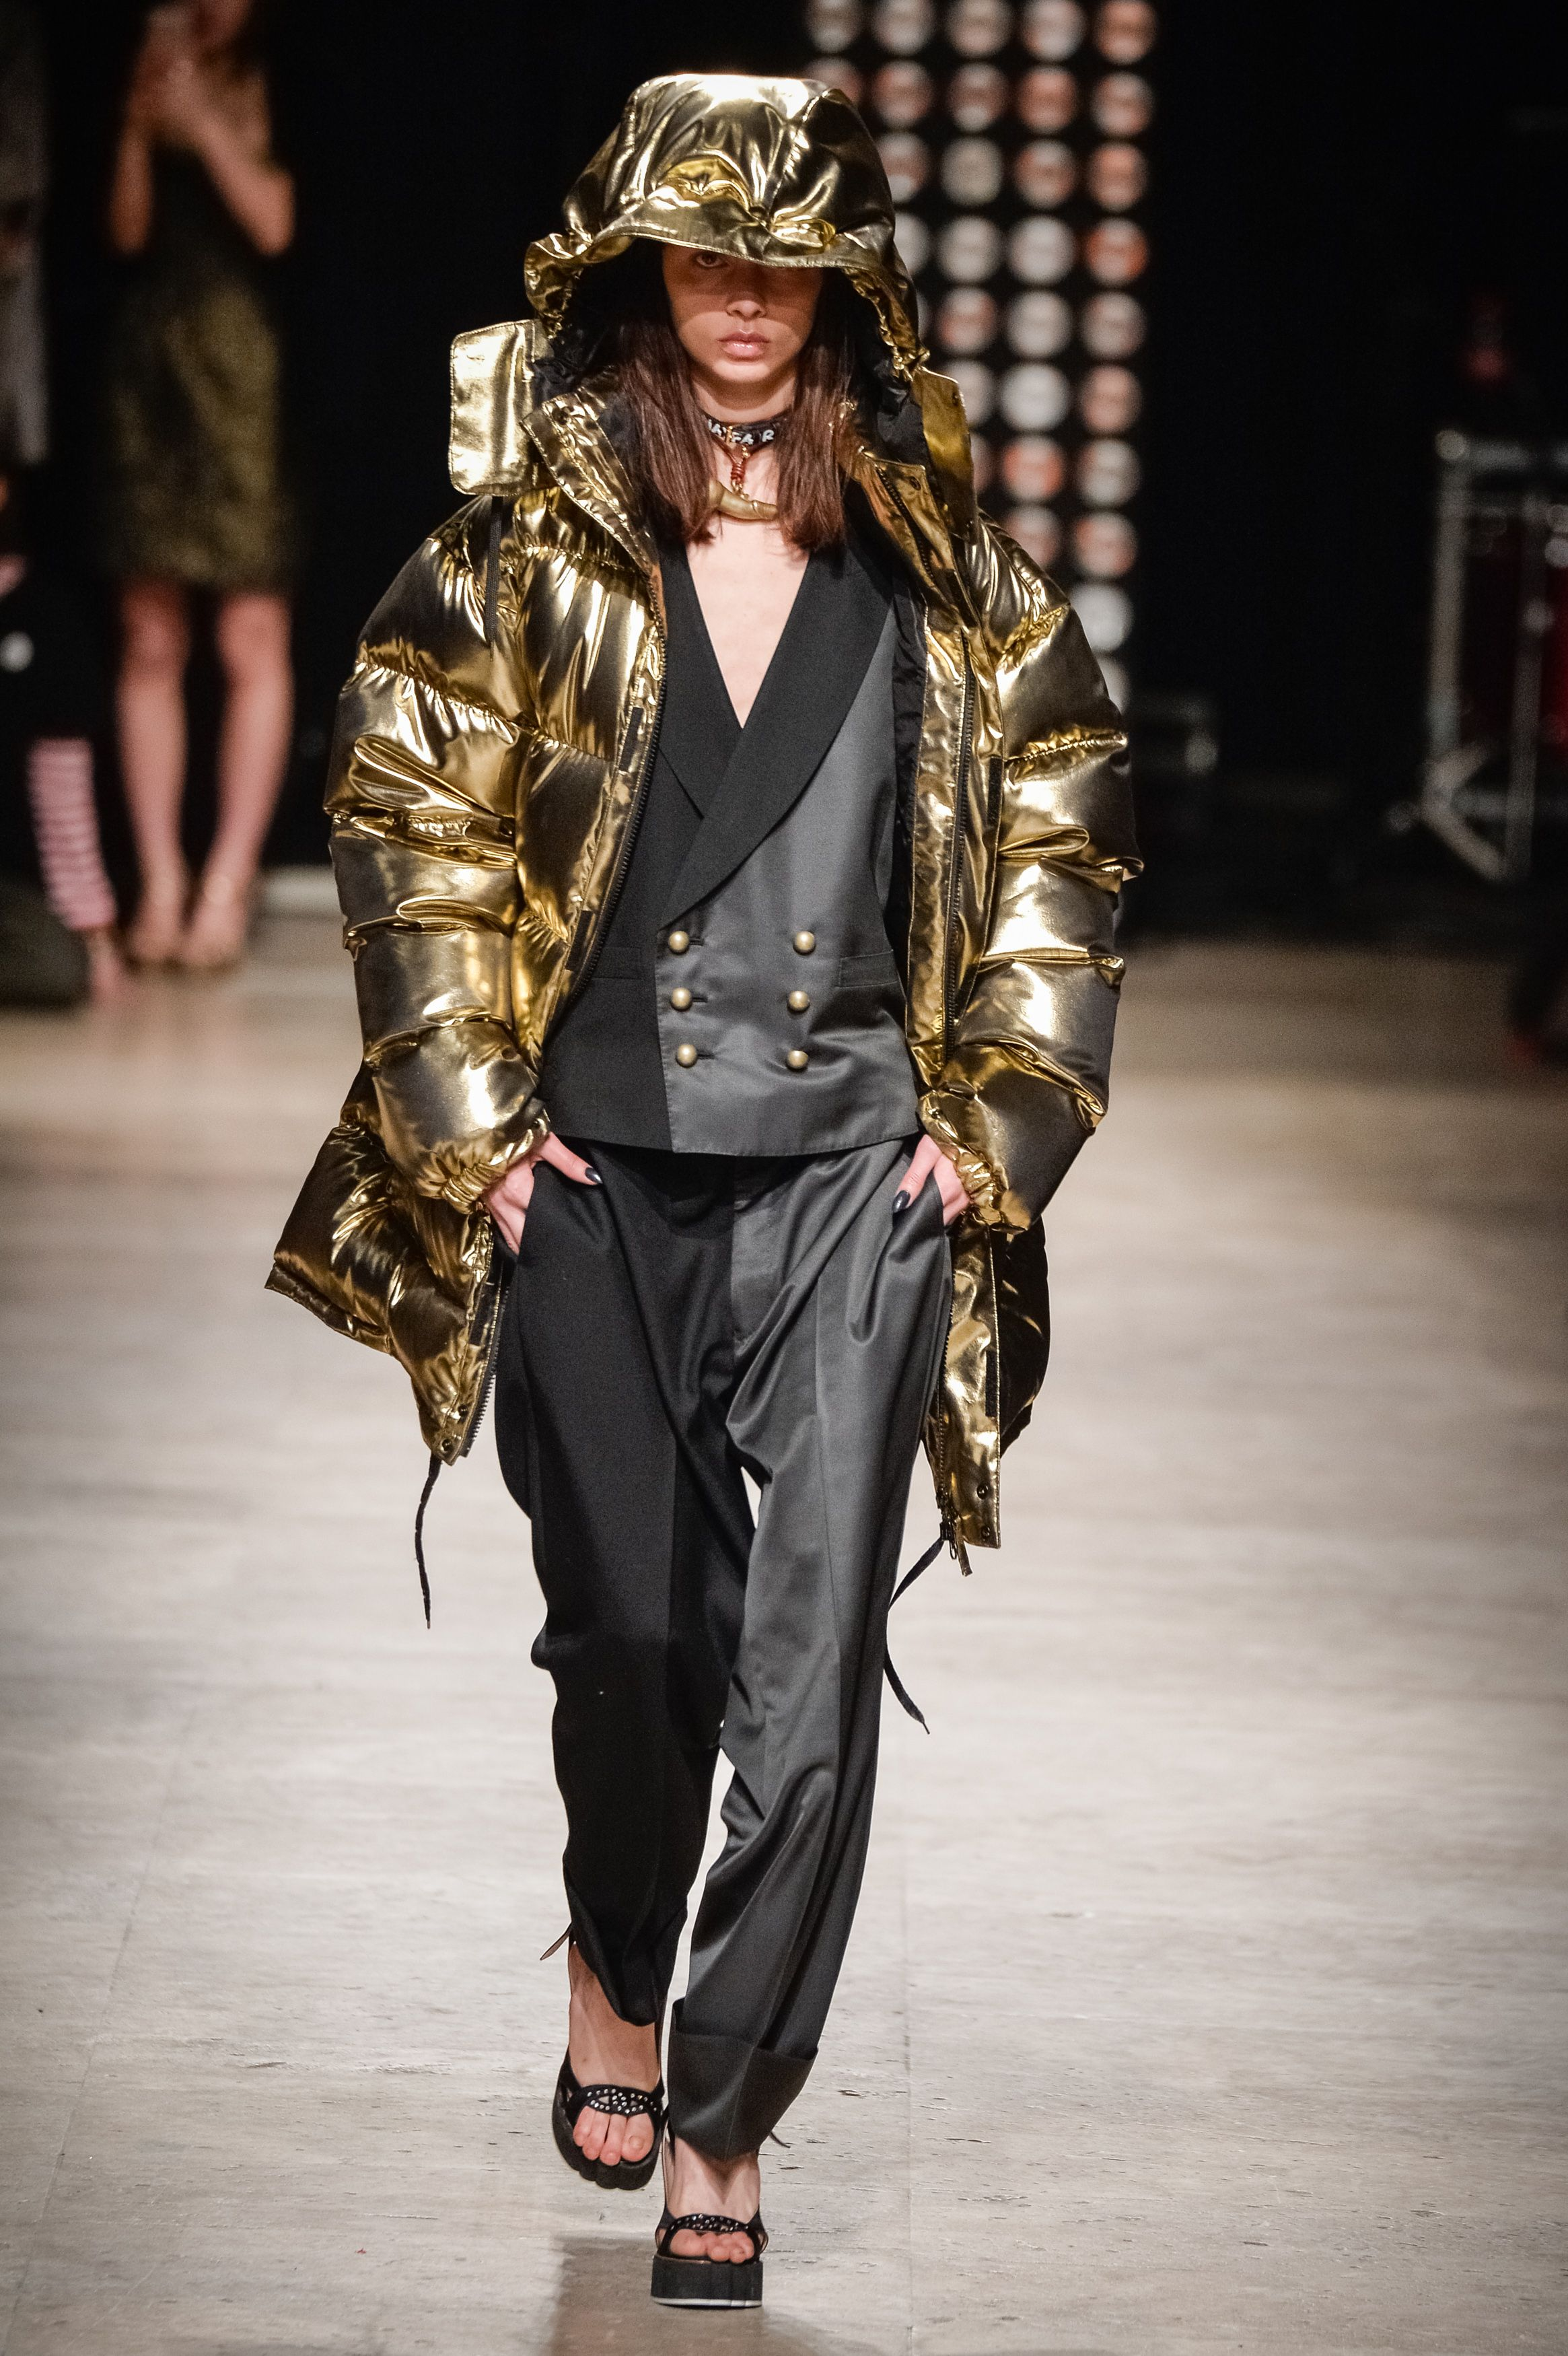 The 10 Most Wearable Winter Trends | RUNWAY | Winter ...